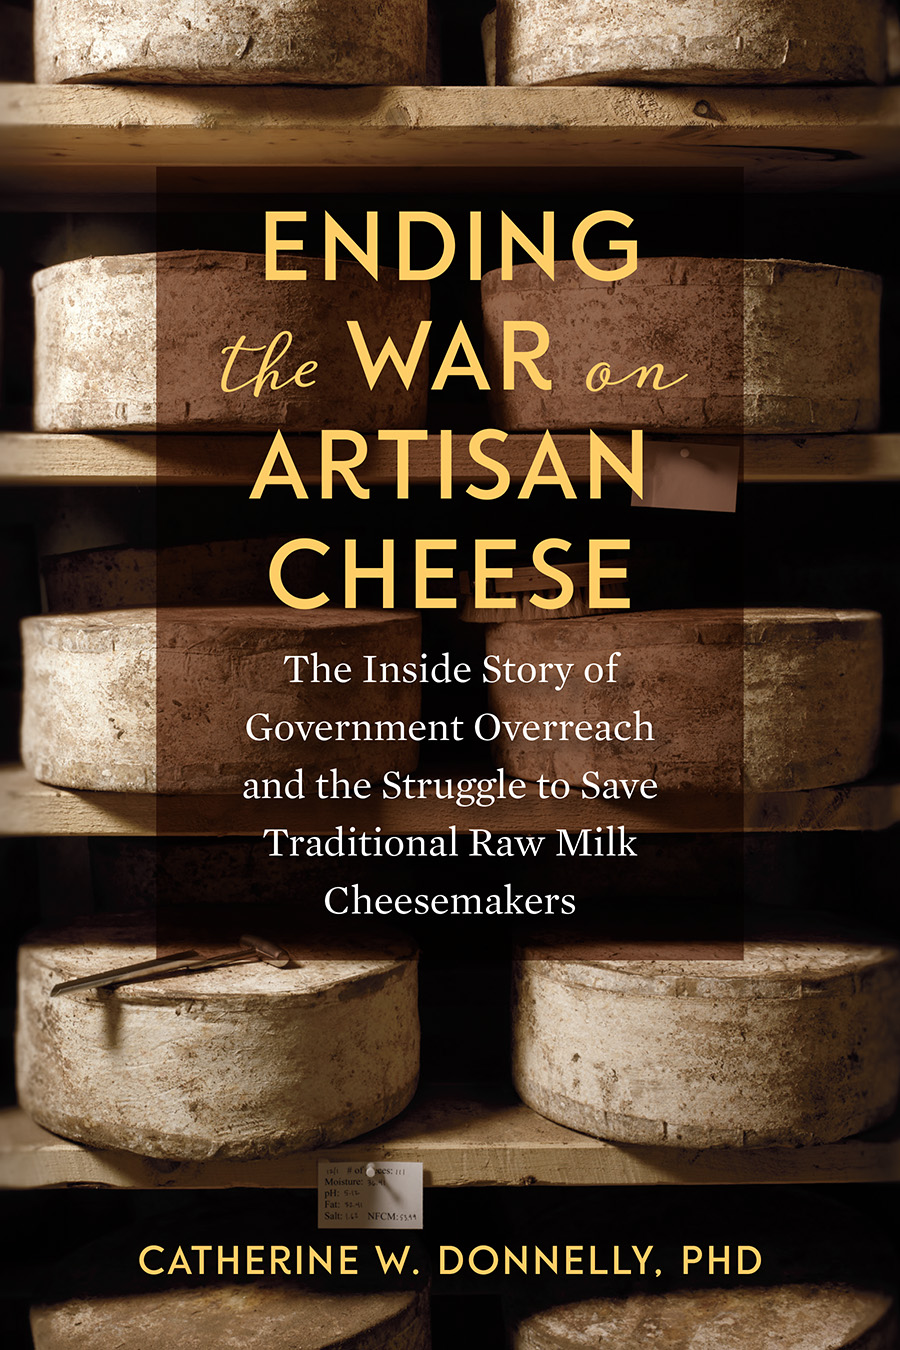 The Ending the War on Artisan Cheese cover